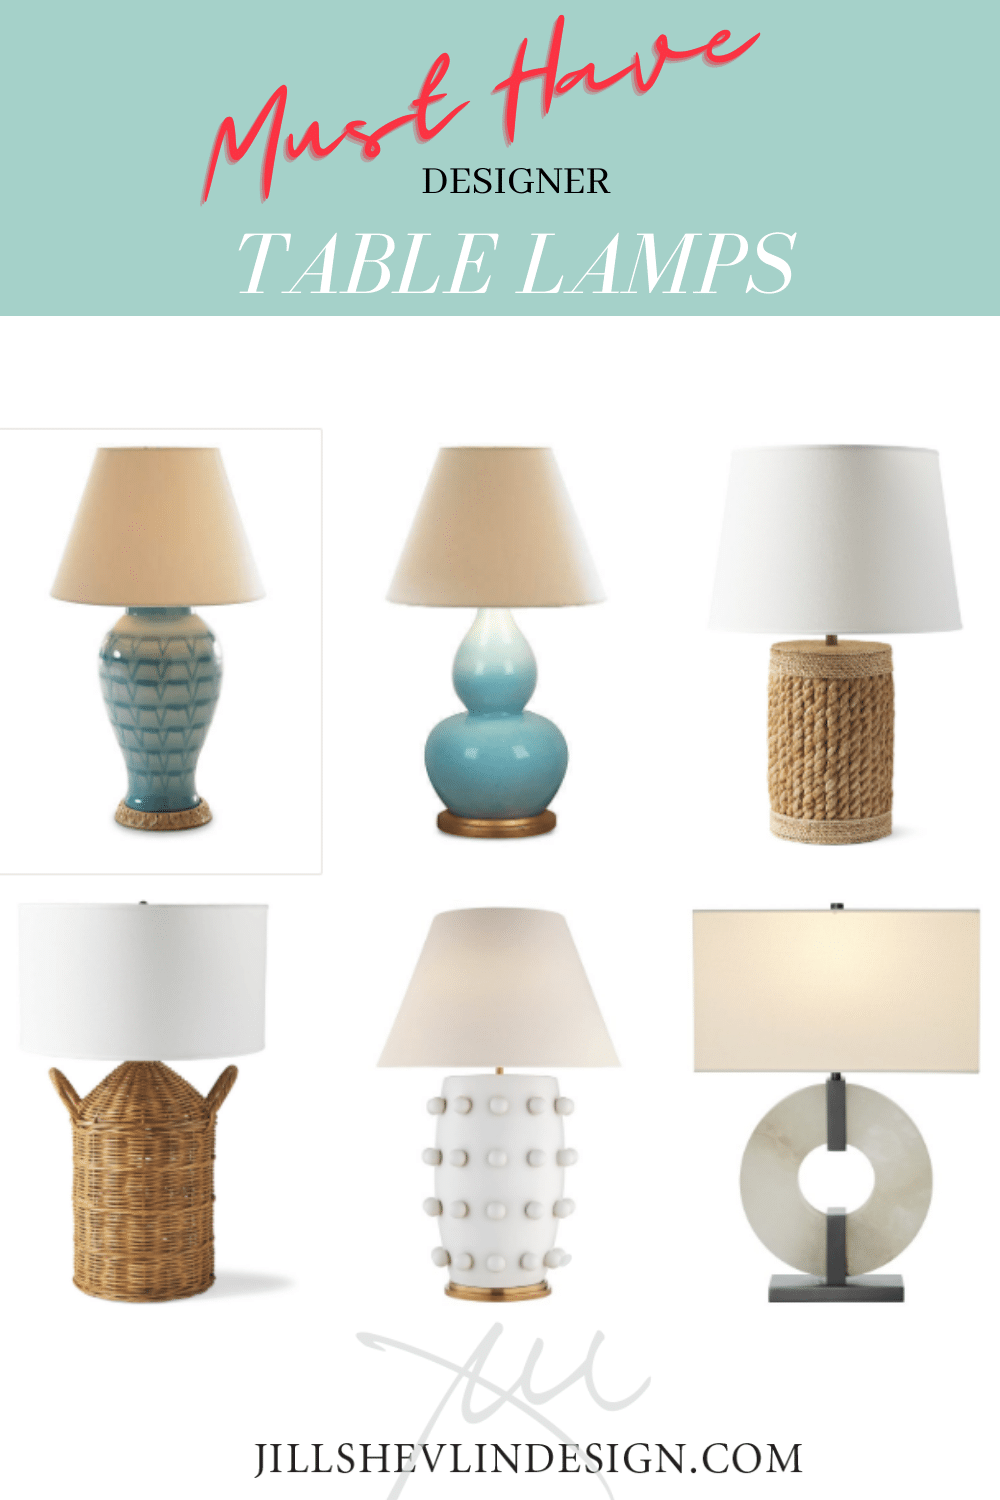 Six Must Have designer Table Lamps Jill Shevlin Design Creative Interior Design